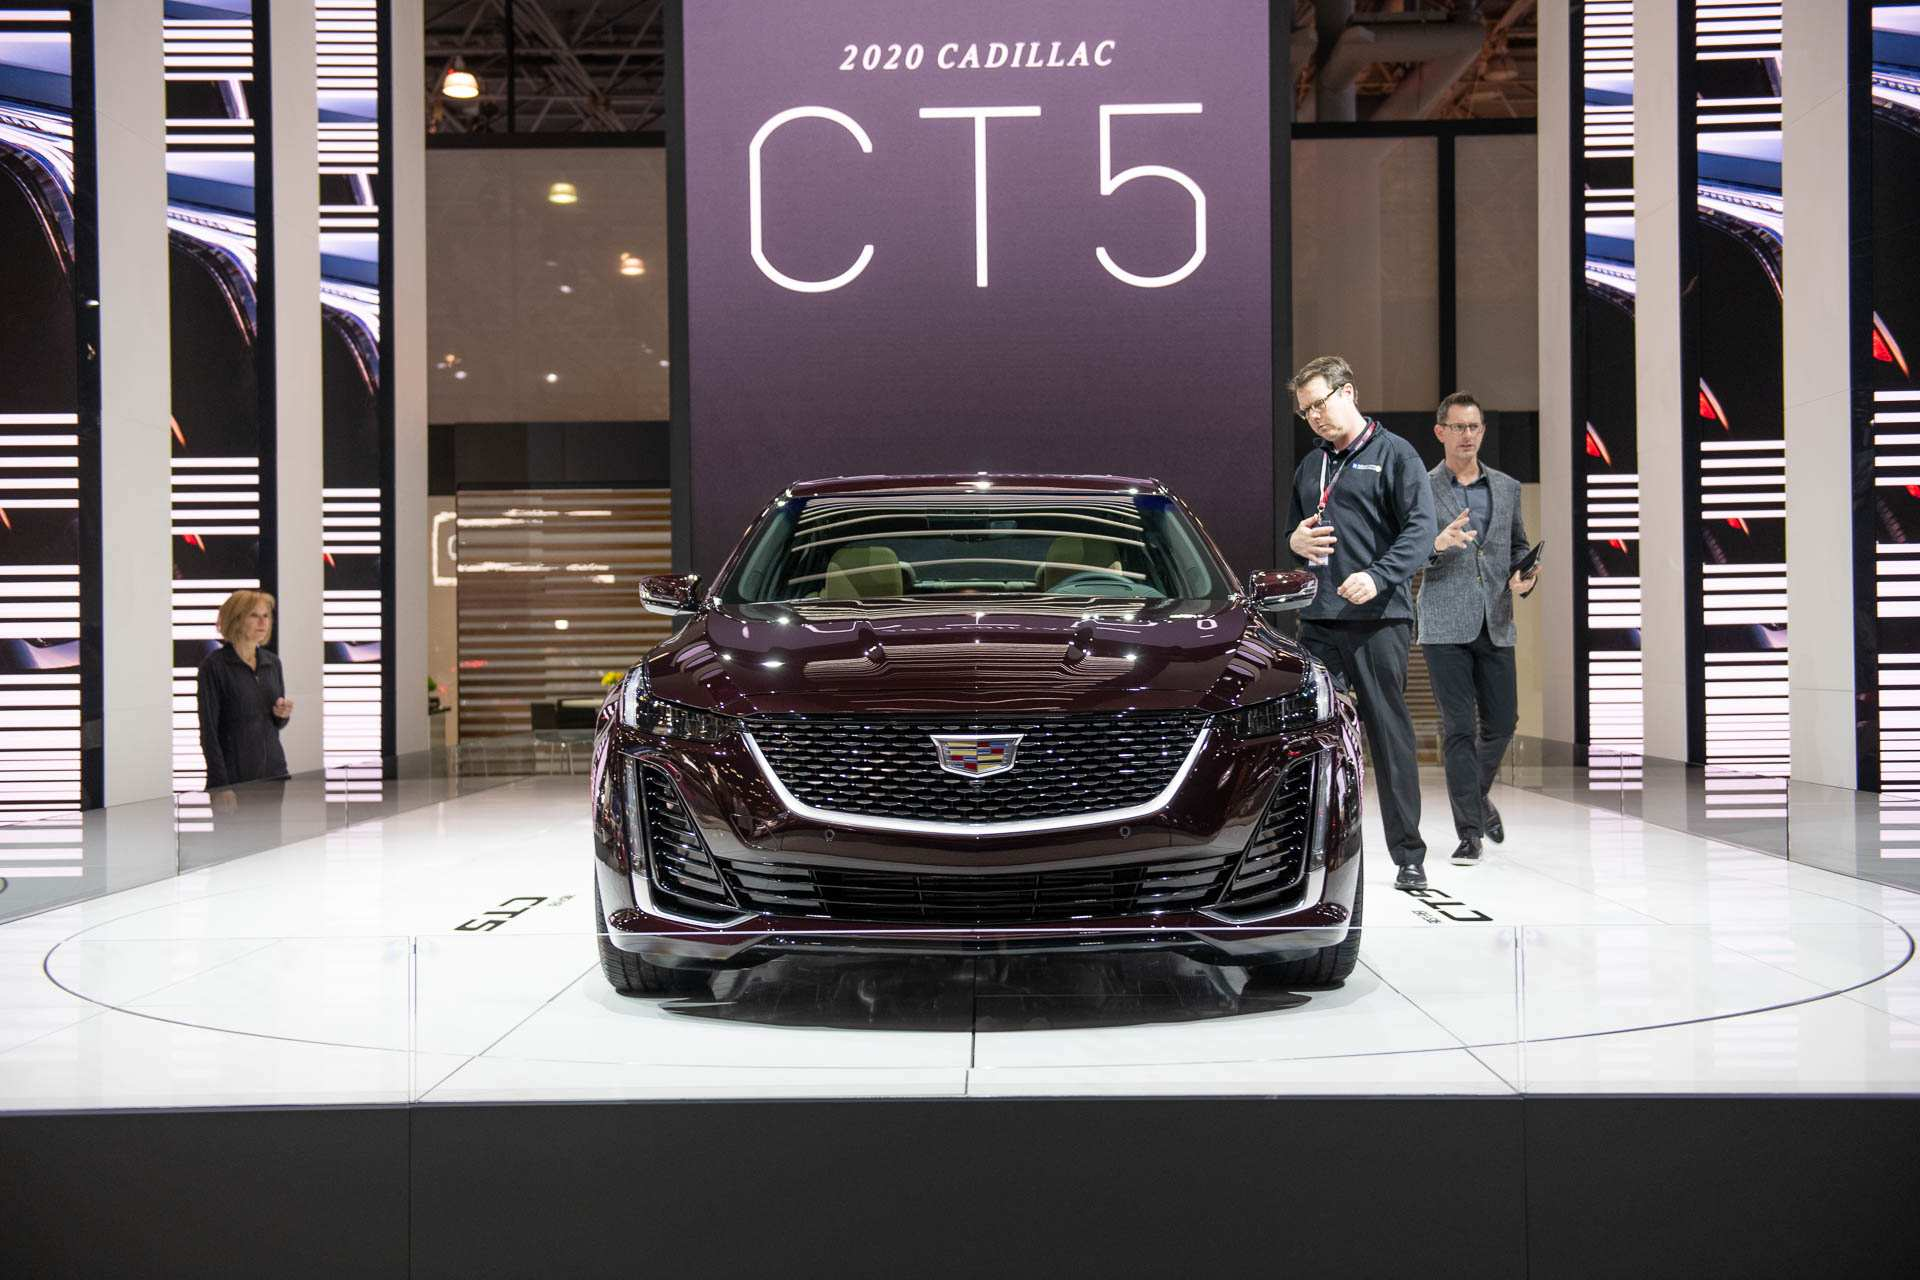 18 A 2020 Cadillac Ct5 Horsepower Engine